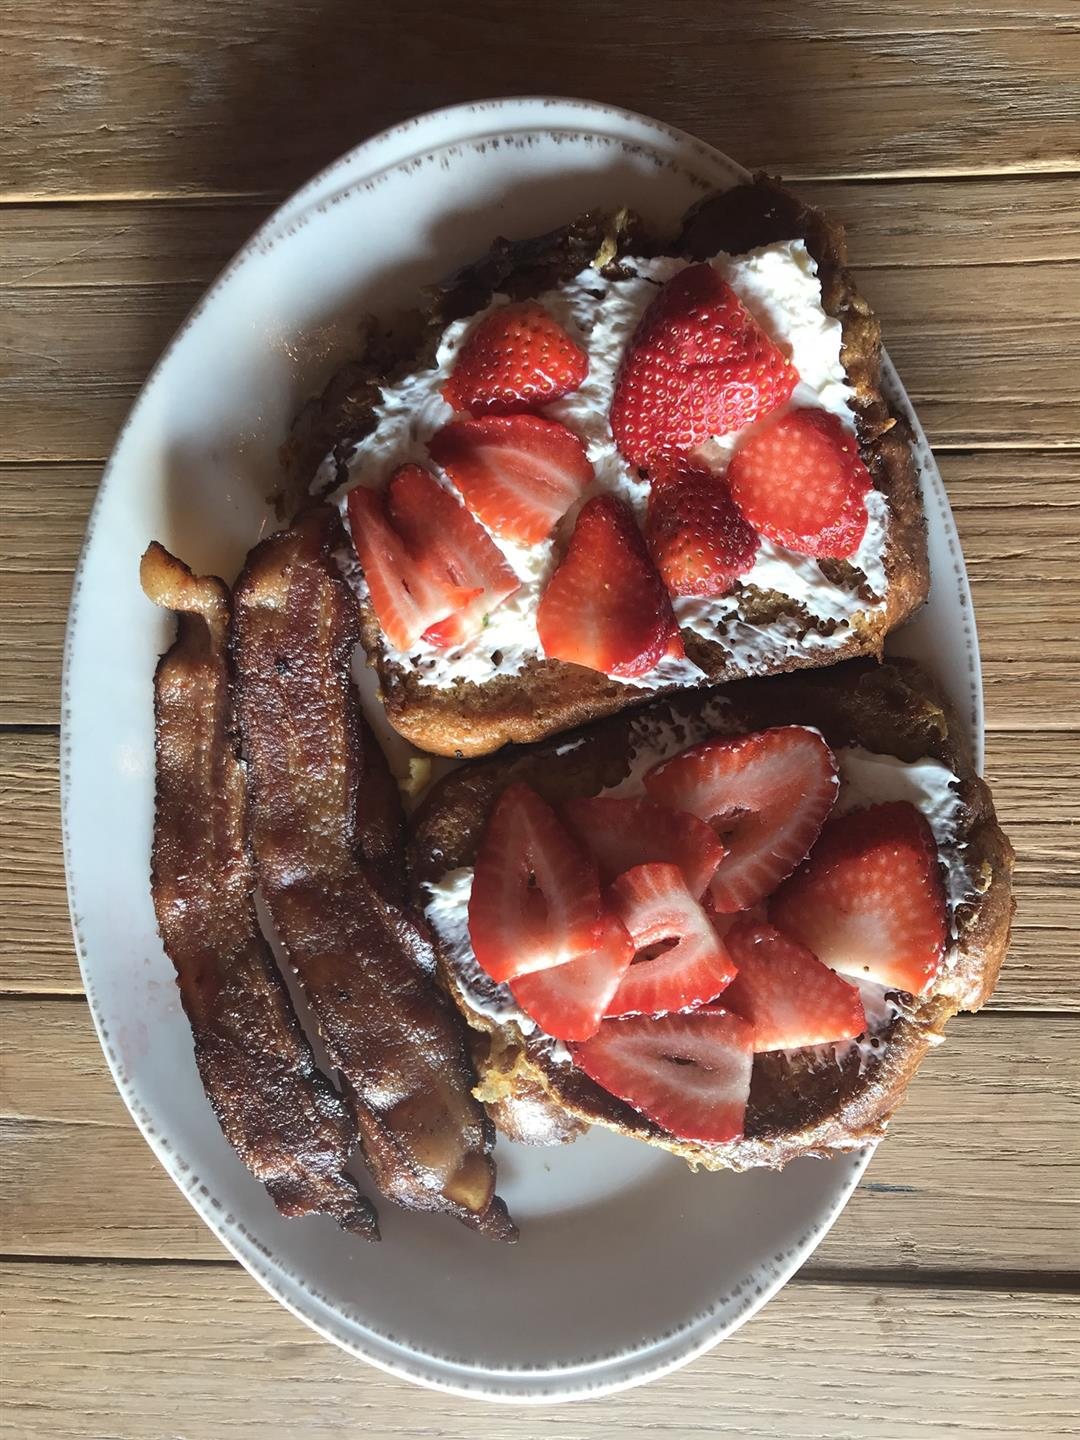 french toast with whipped cream and strawberries on top and bacon on the side